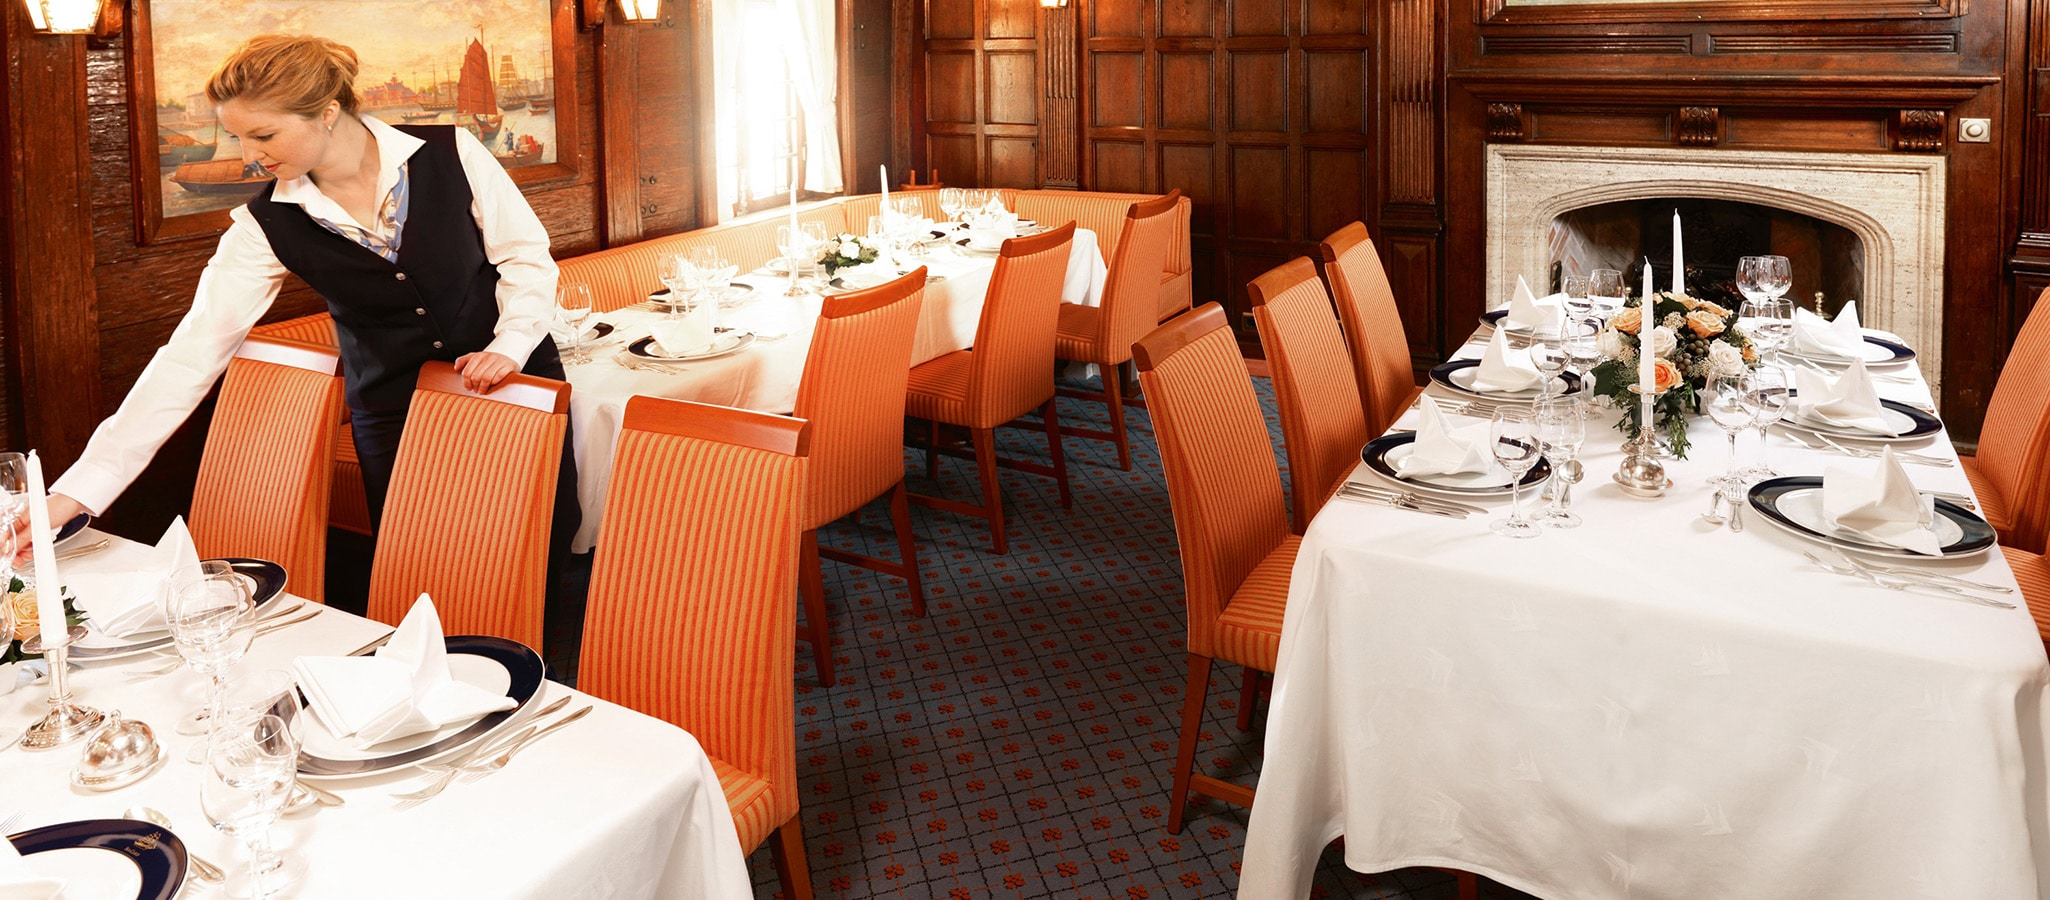 The restaurants have the charm of a privately staged dinner – a lovely setting for your gala evening.